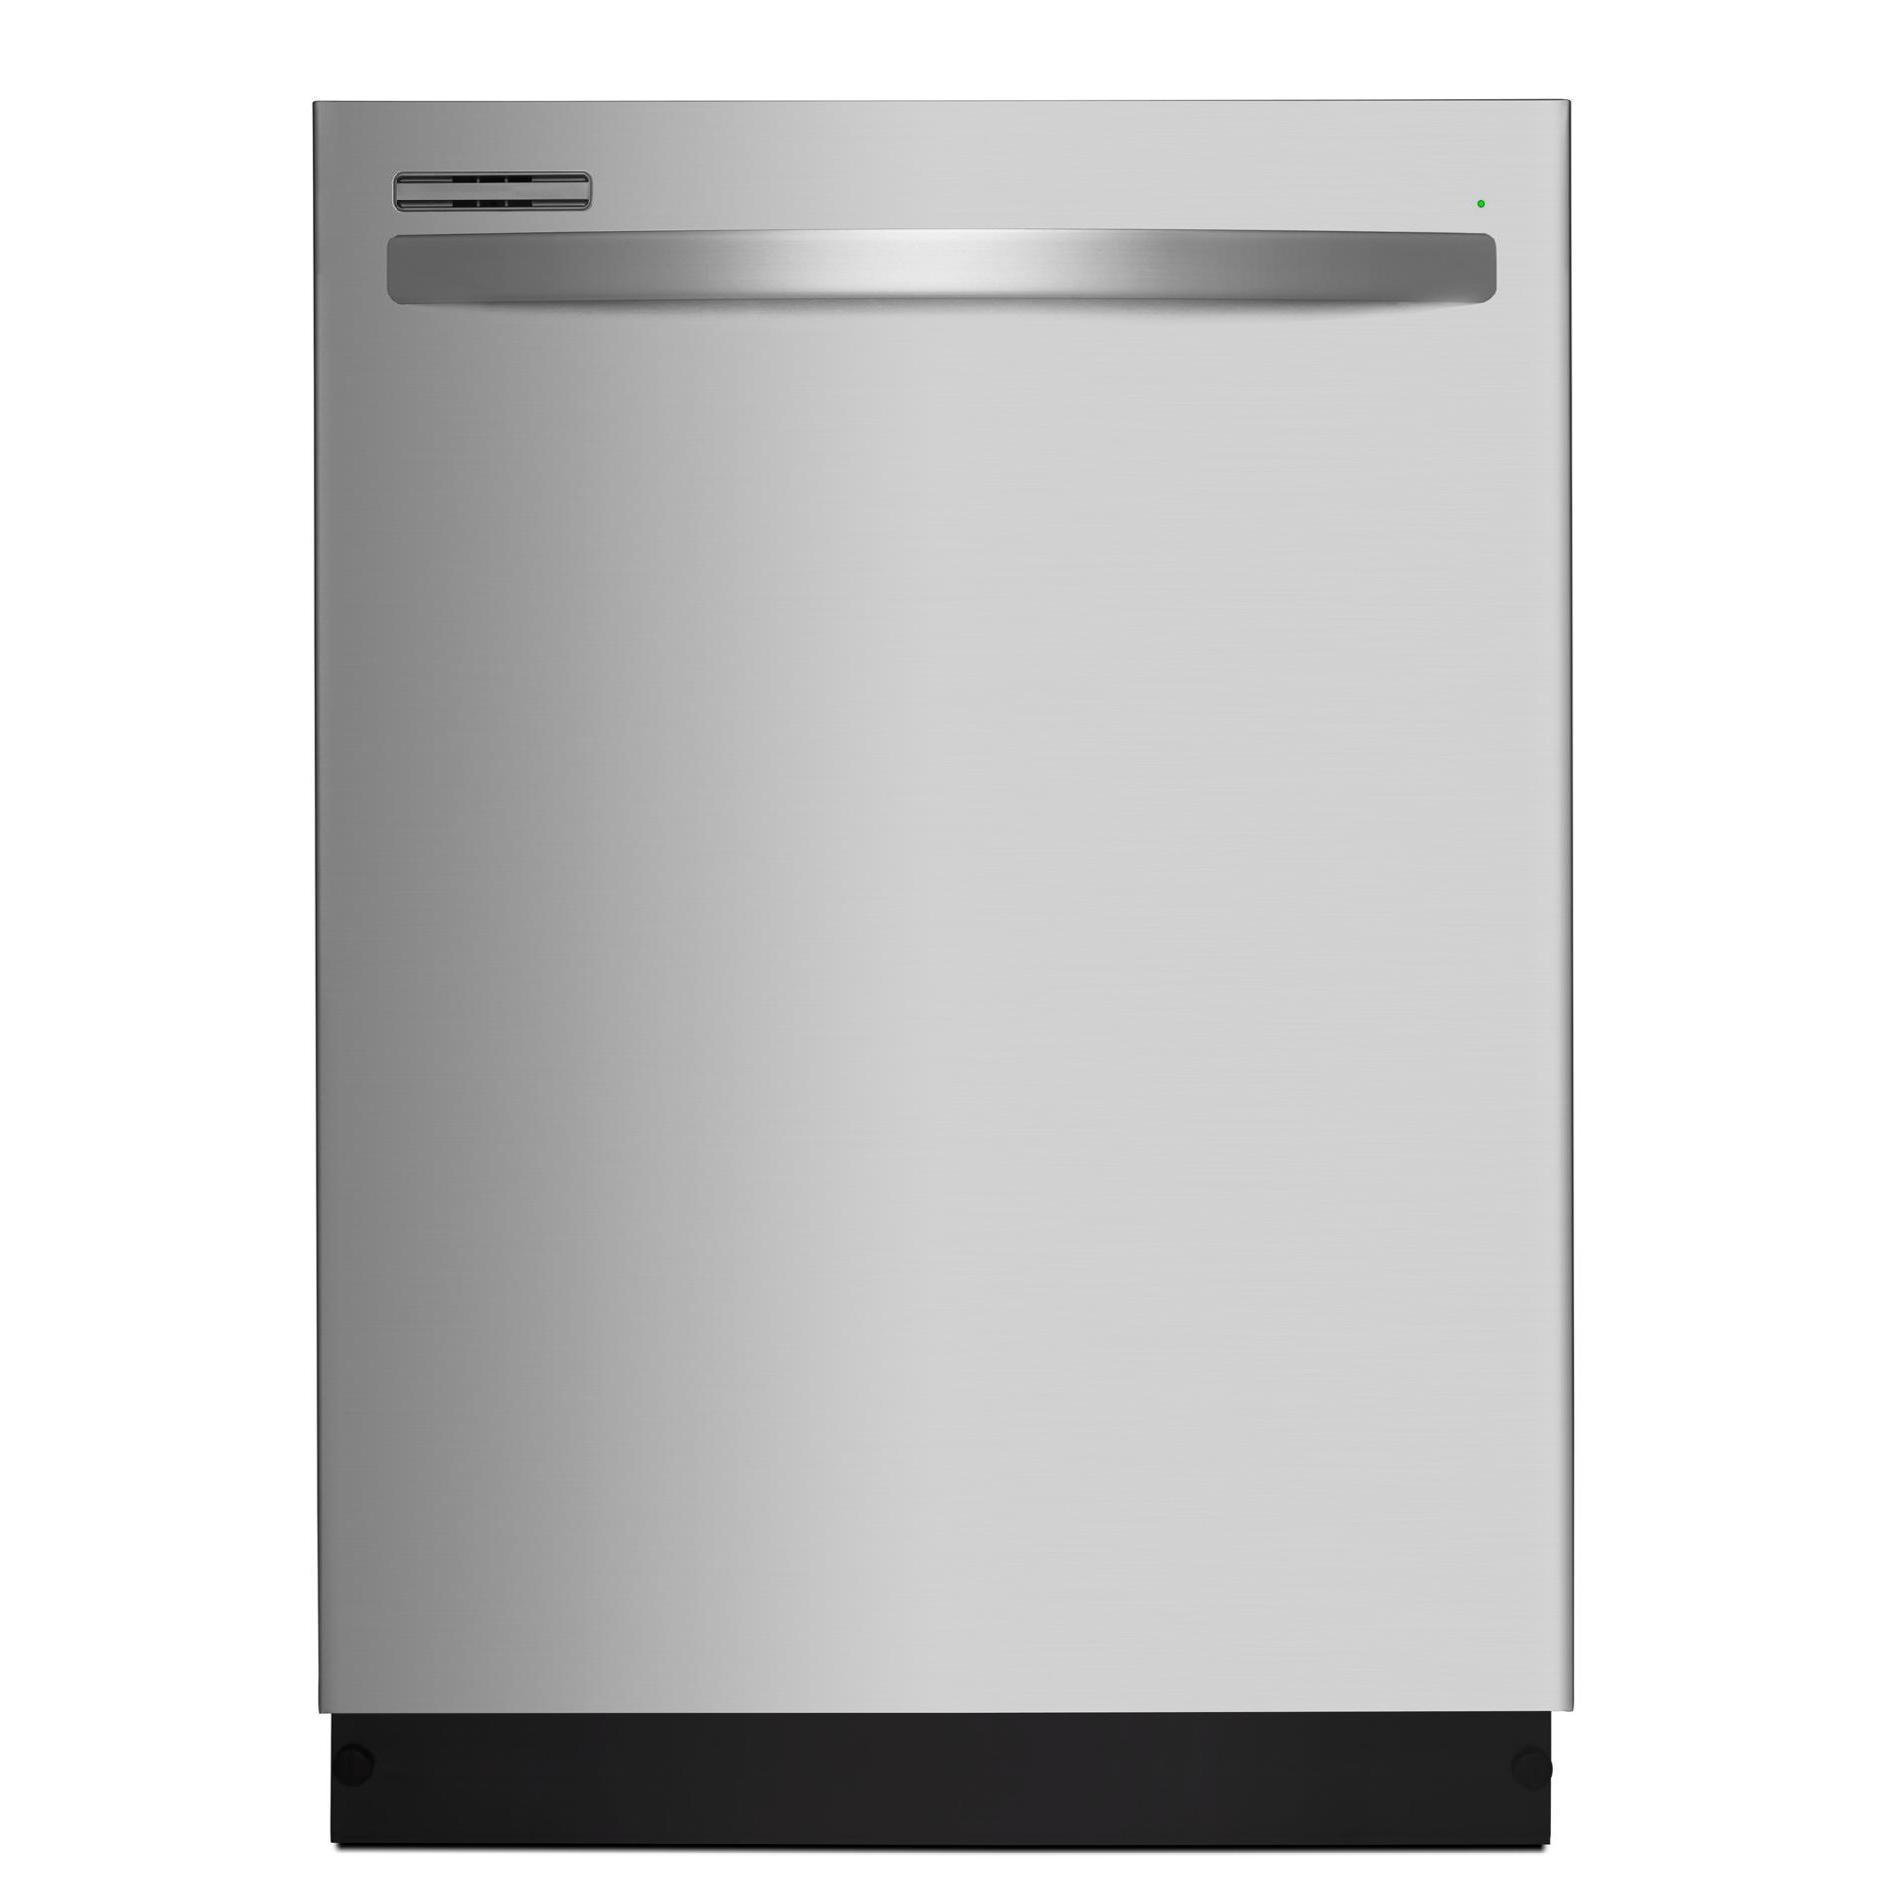 Kenmore 13473 24 Built-In Dishwasher w/ PowerWave™ Spray Arm - Stainless Steel